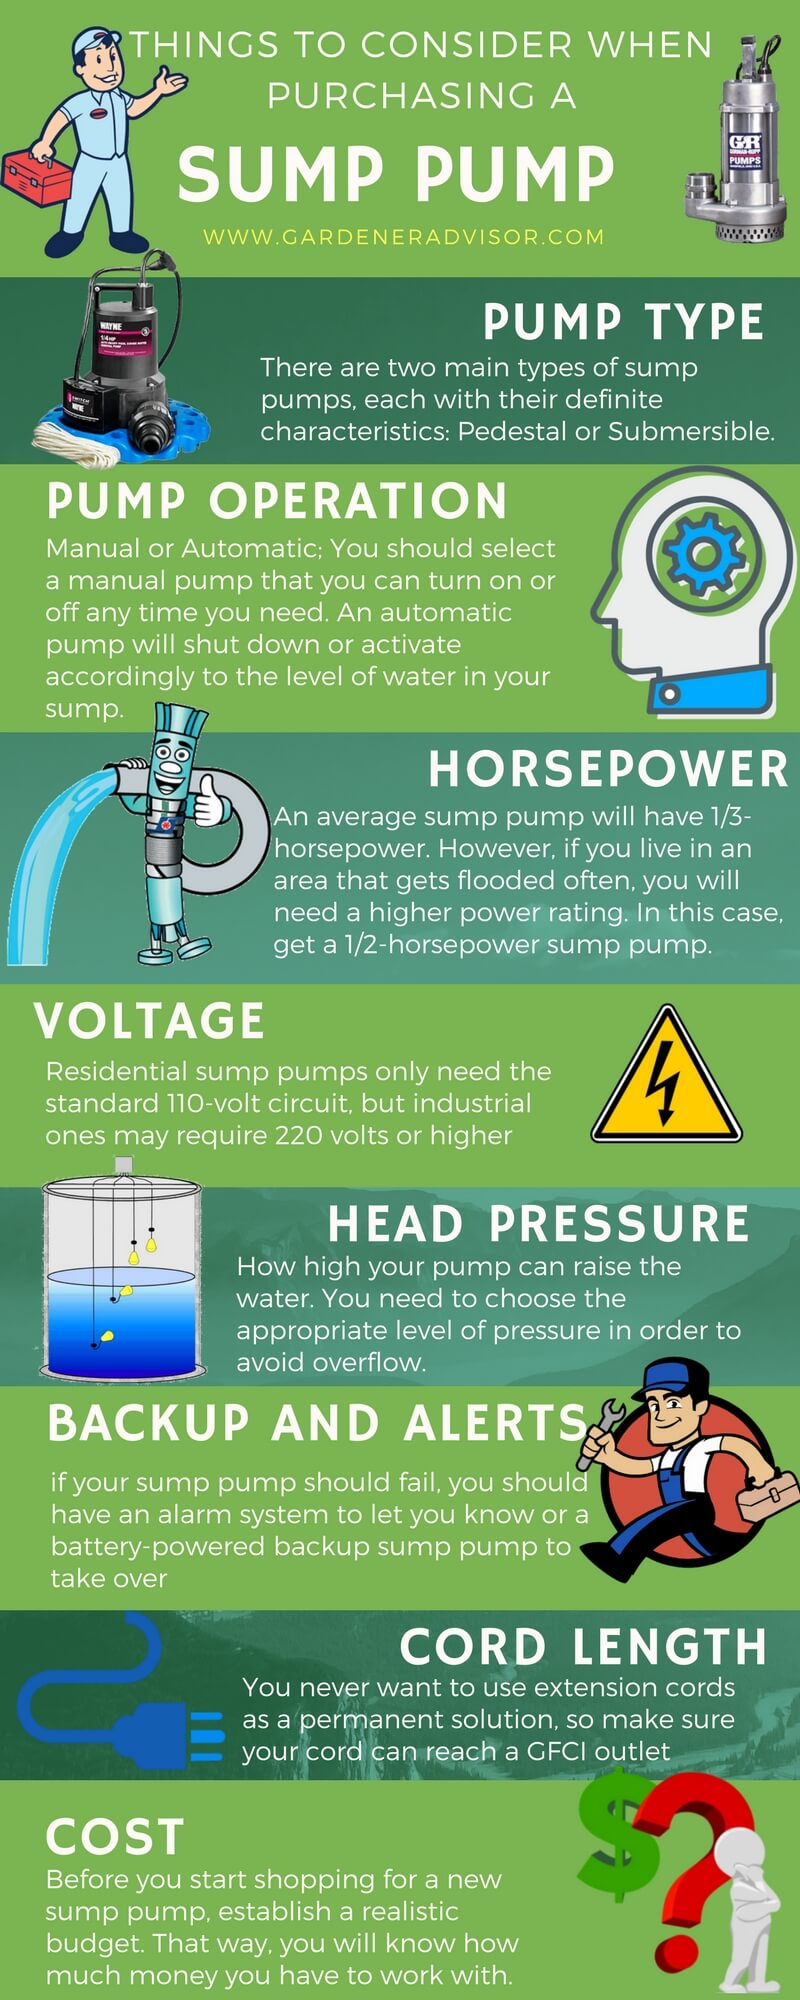 Things to Consider When Purchasing a Sump Pump